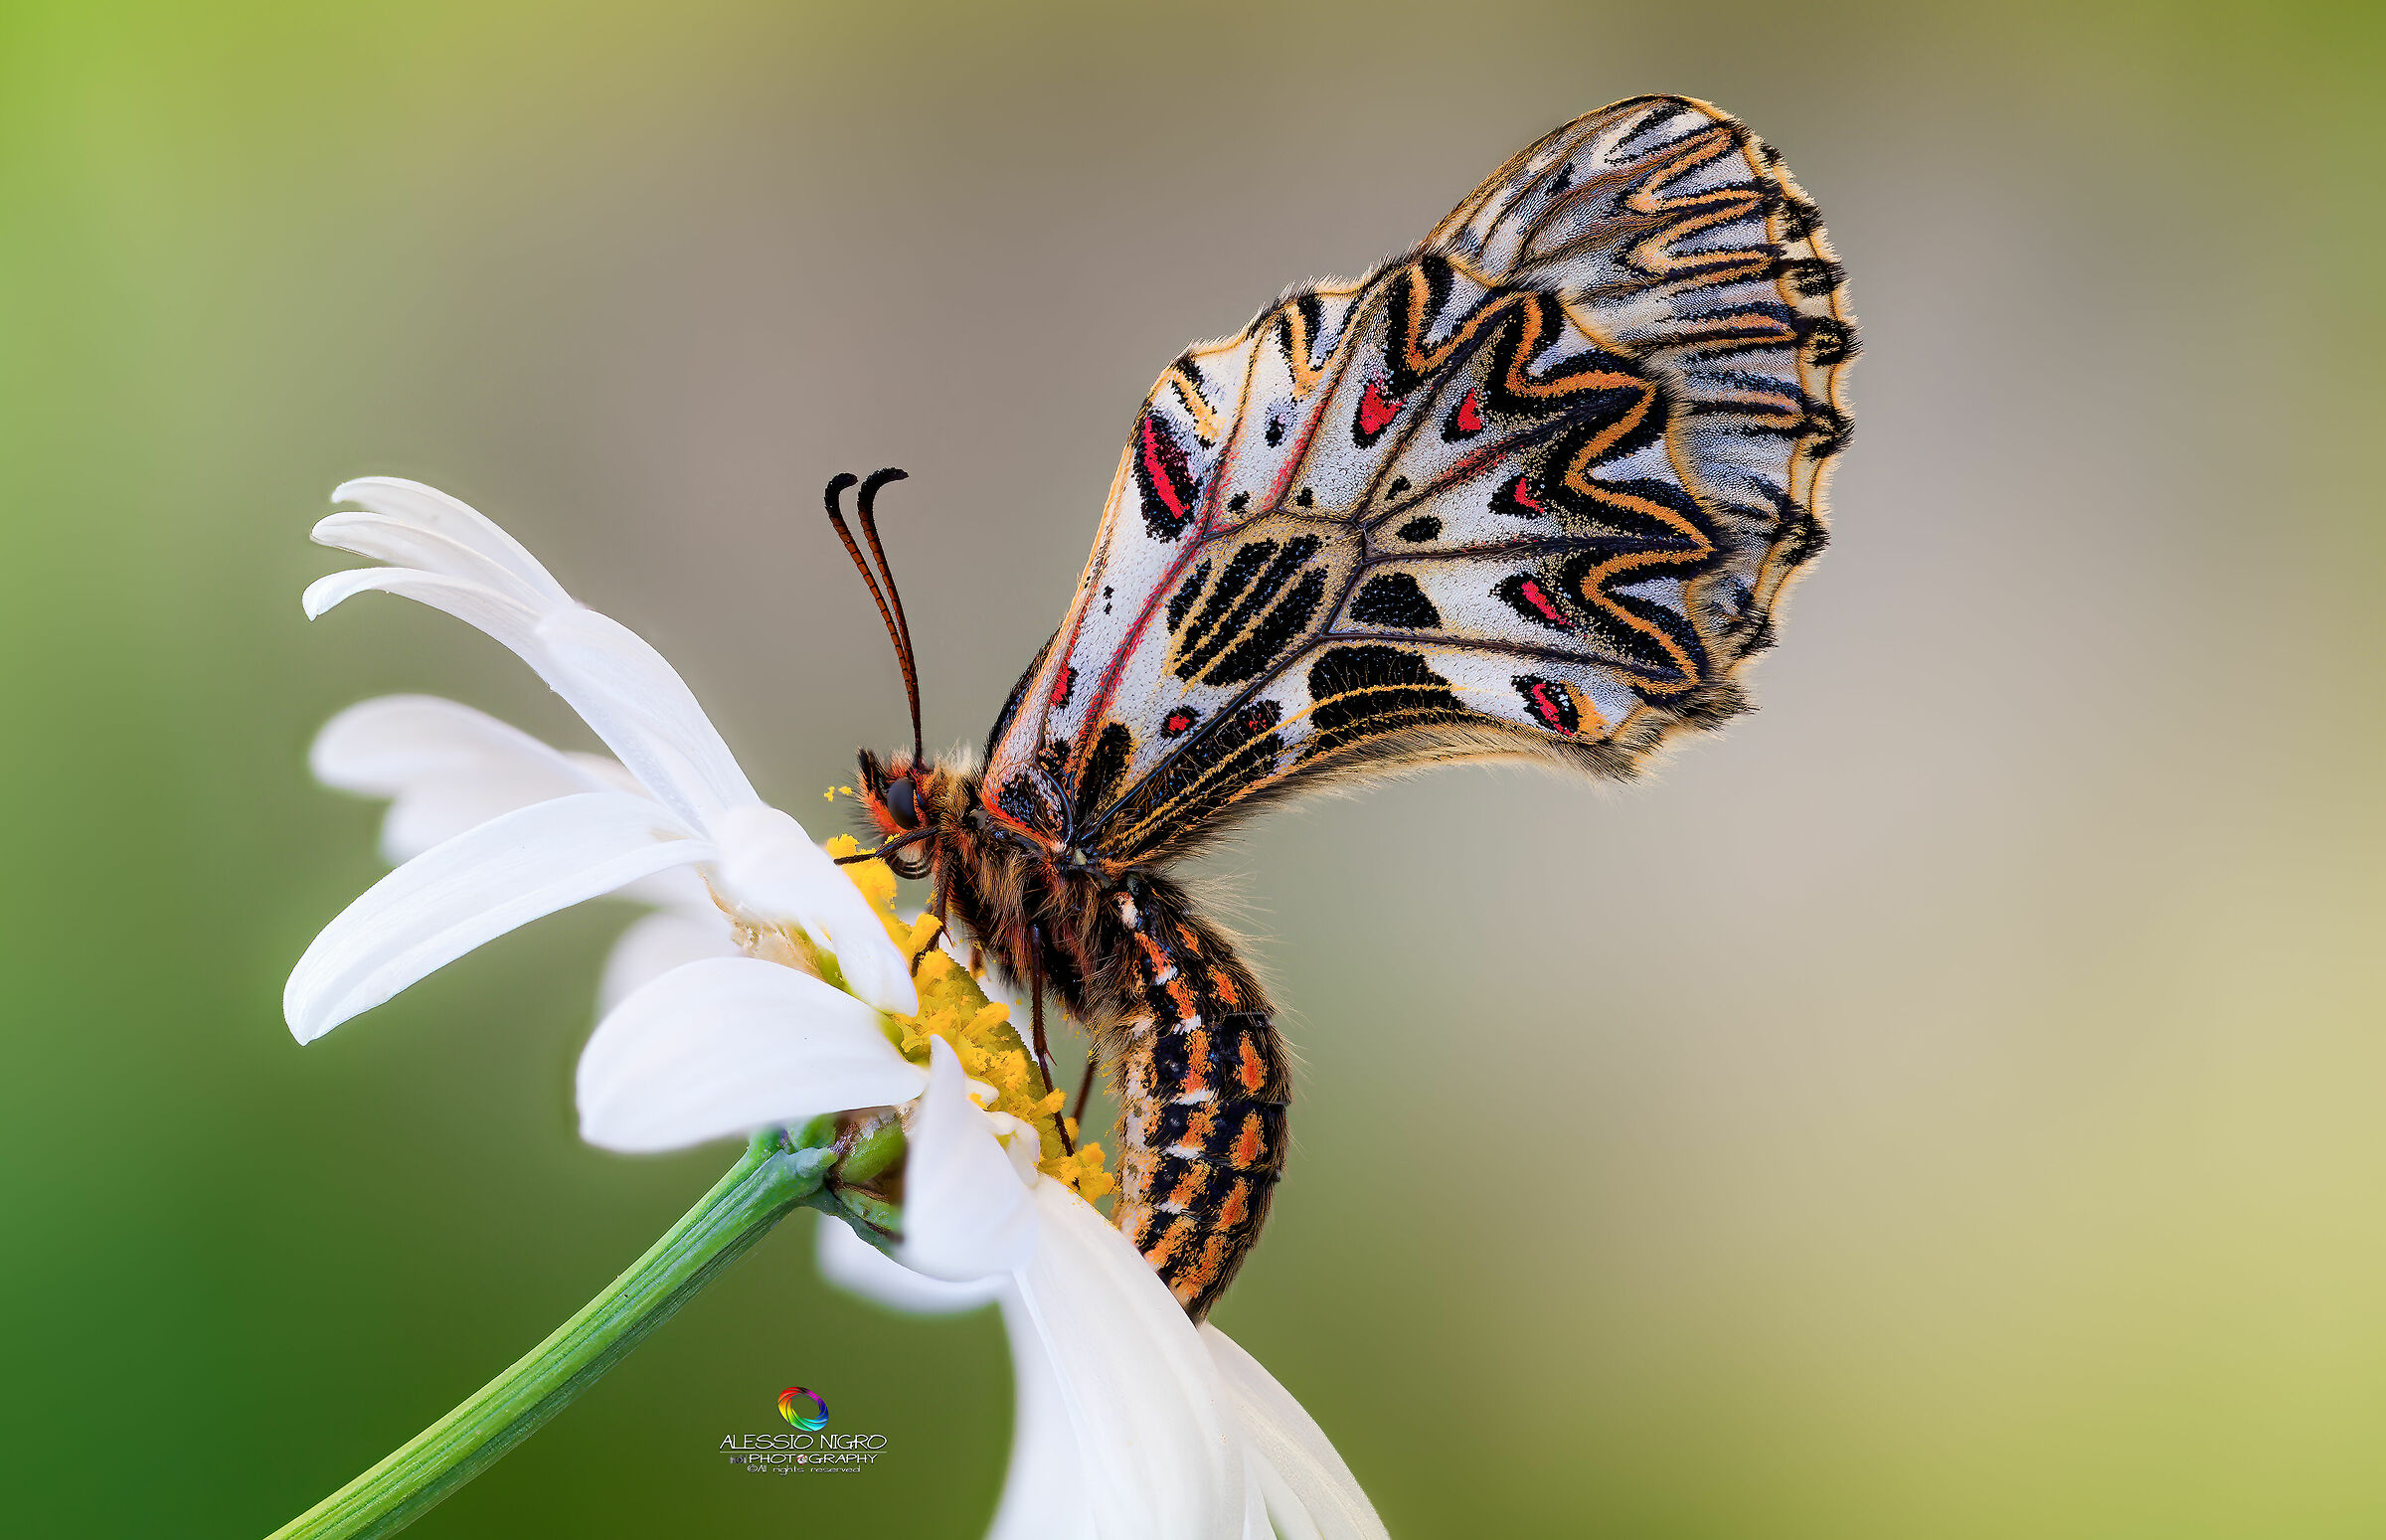 The Butterfly & the Daisy......